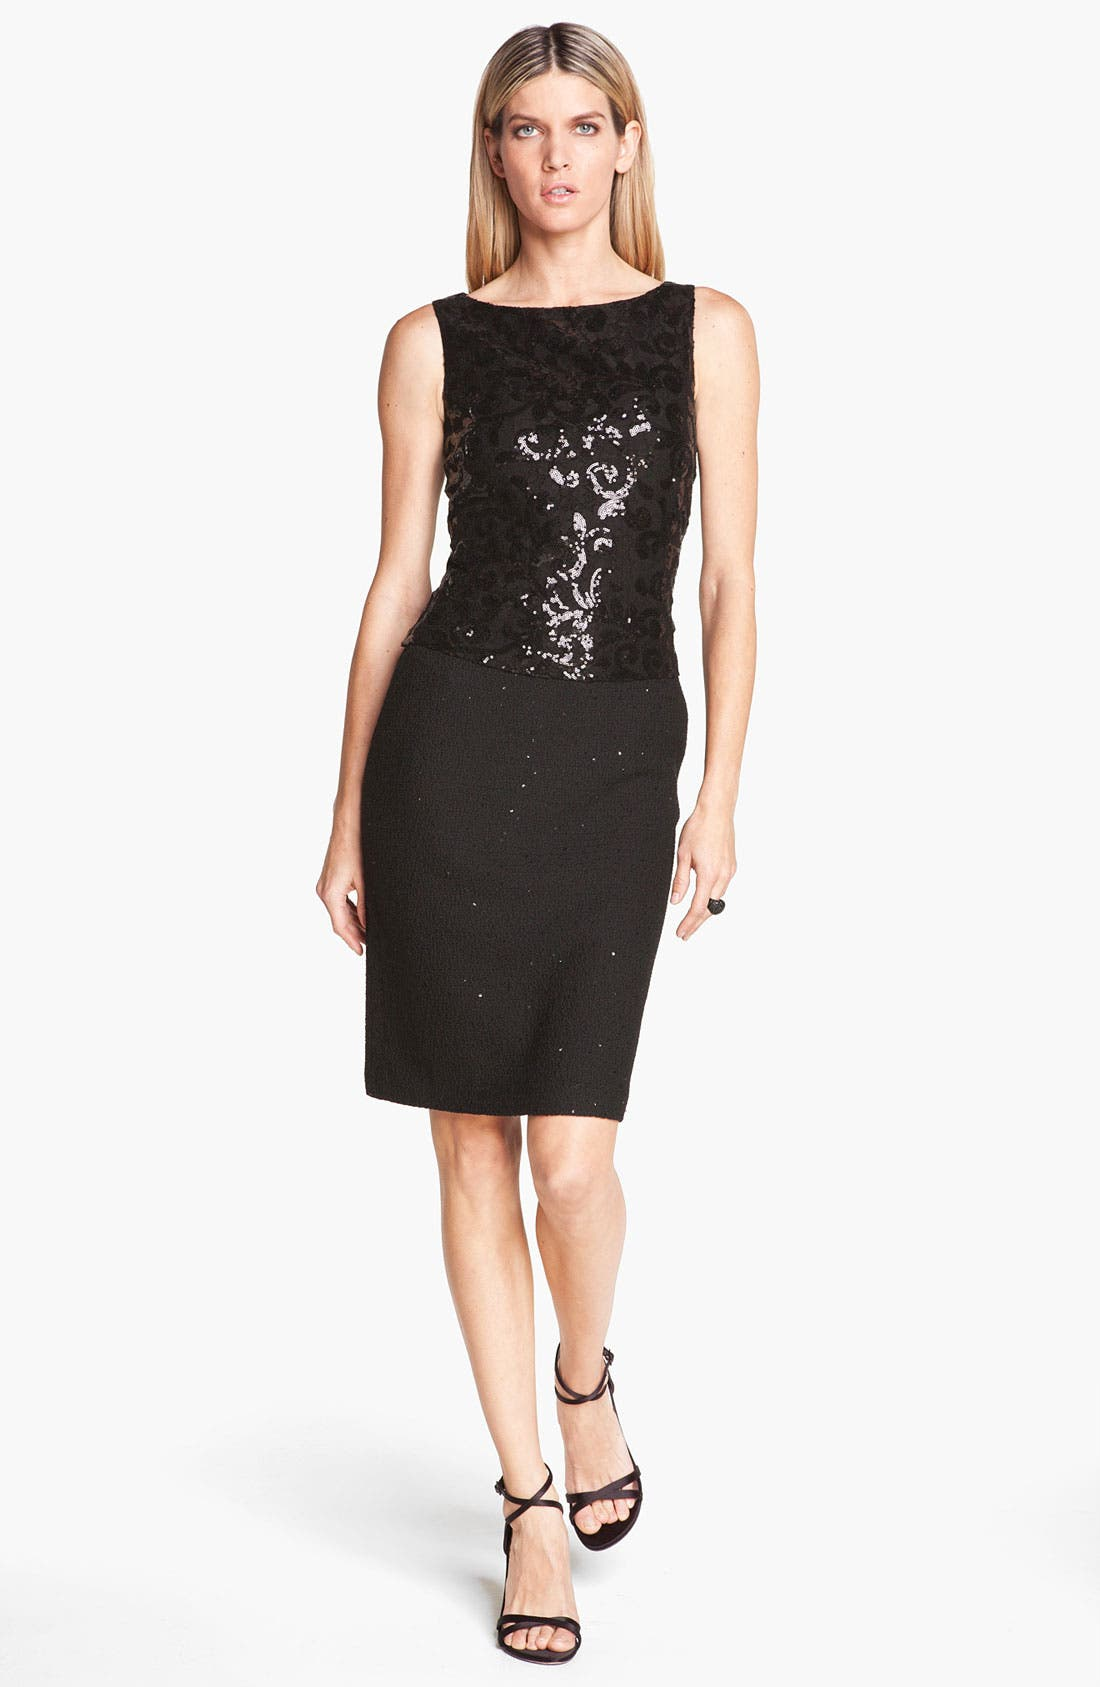 Alternate Image 1 Selected - St. John Collection Sequin Lace & Shimmer Knit Dress